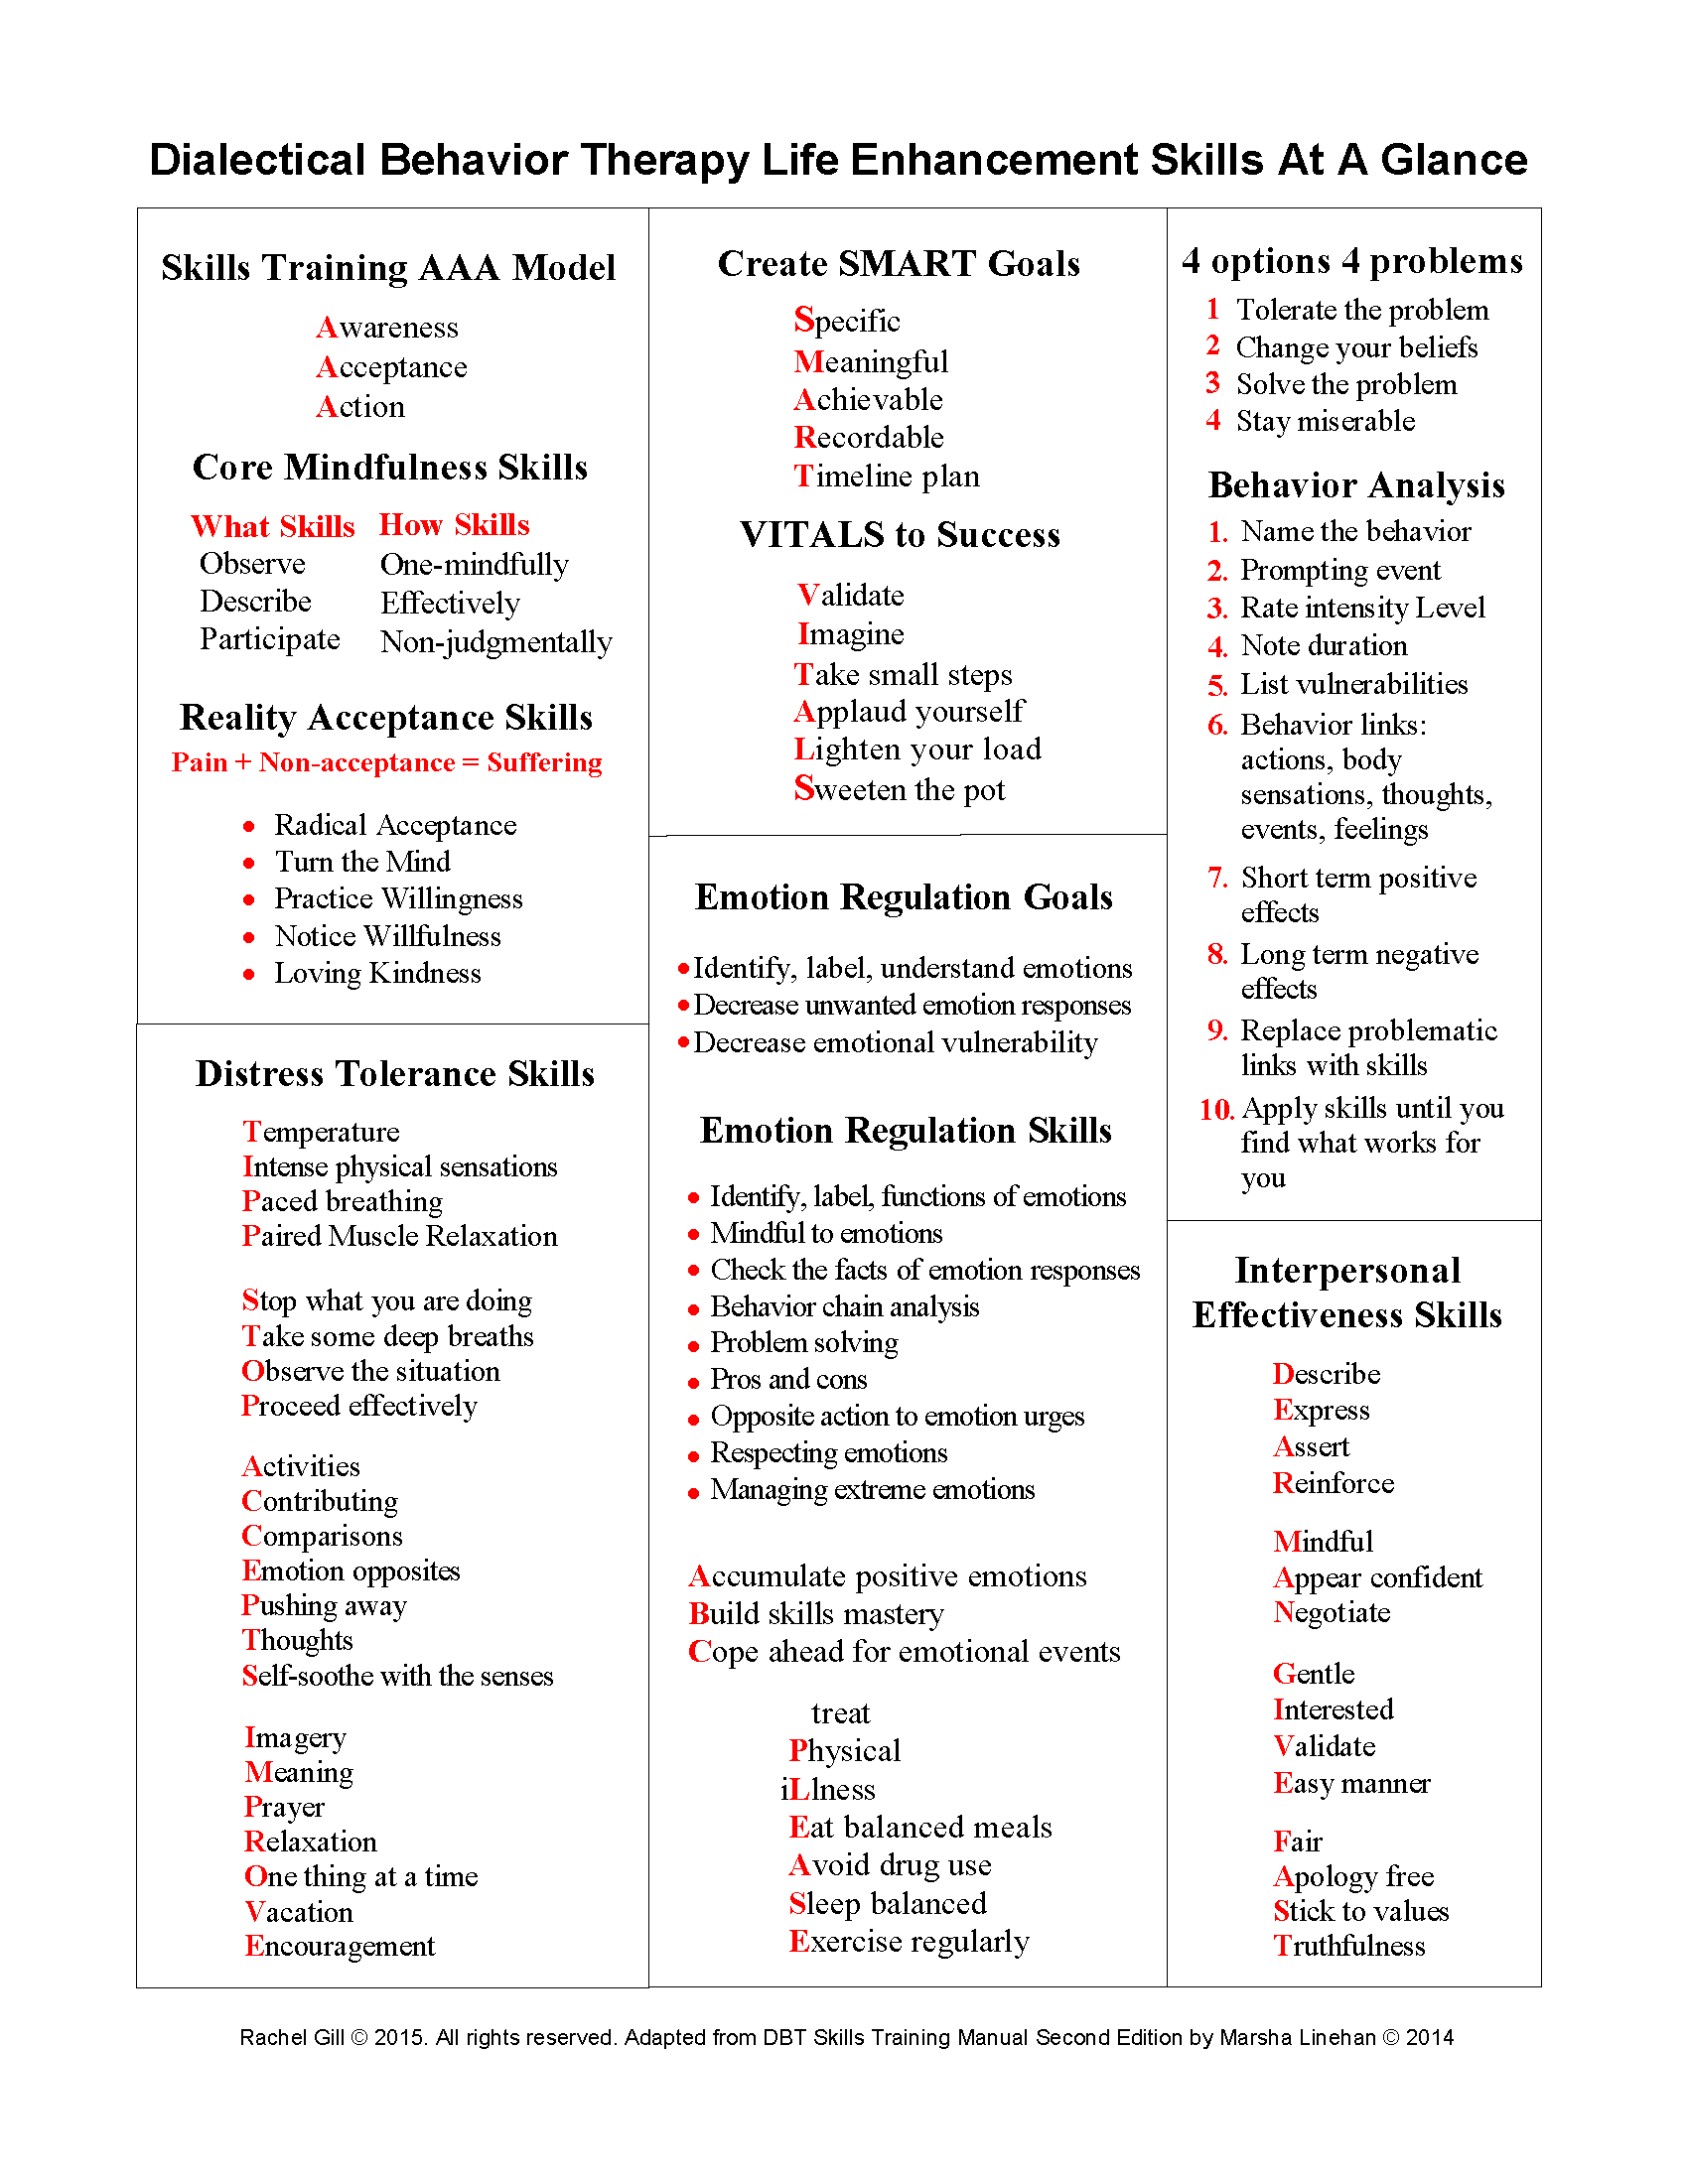 Worksheets Positive Coping Skills Worksheets radical acceptance worksheet free worksheets library download 1000 images about cbt dbt rebt